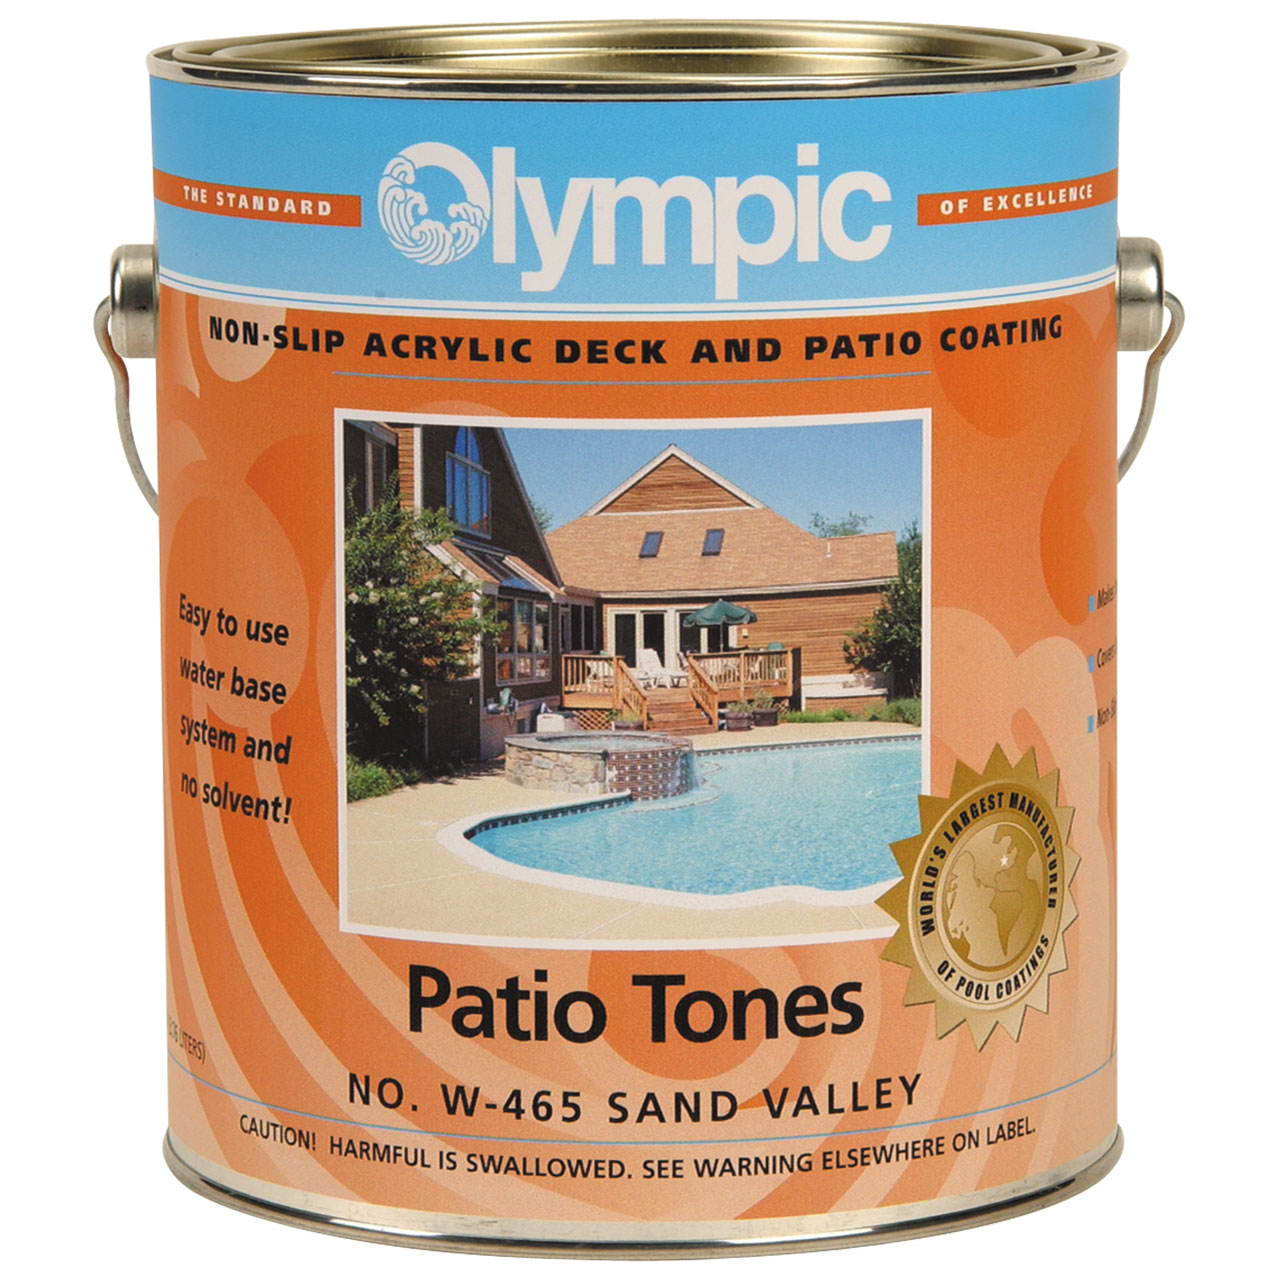 1 Gallon Olympic Patio Tones Deck Coating - Champagne